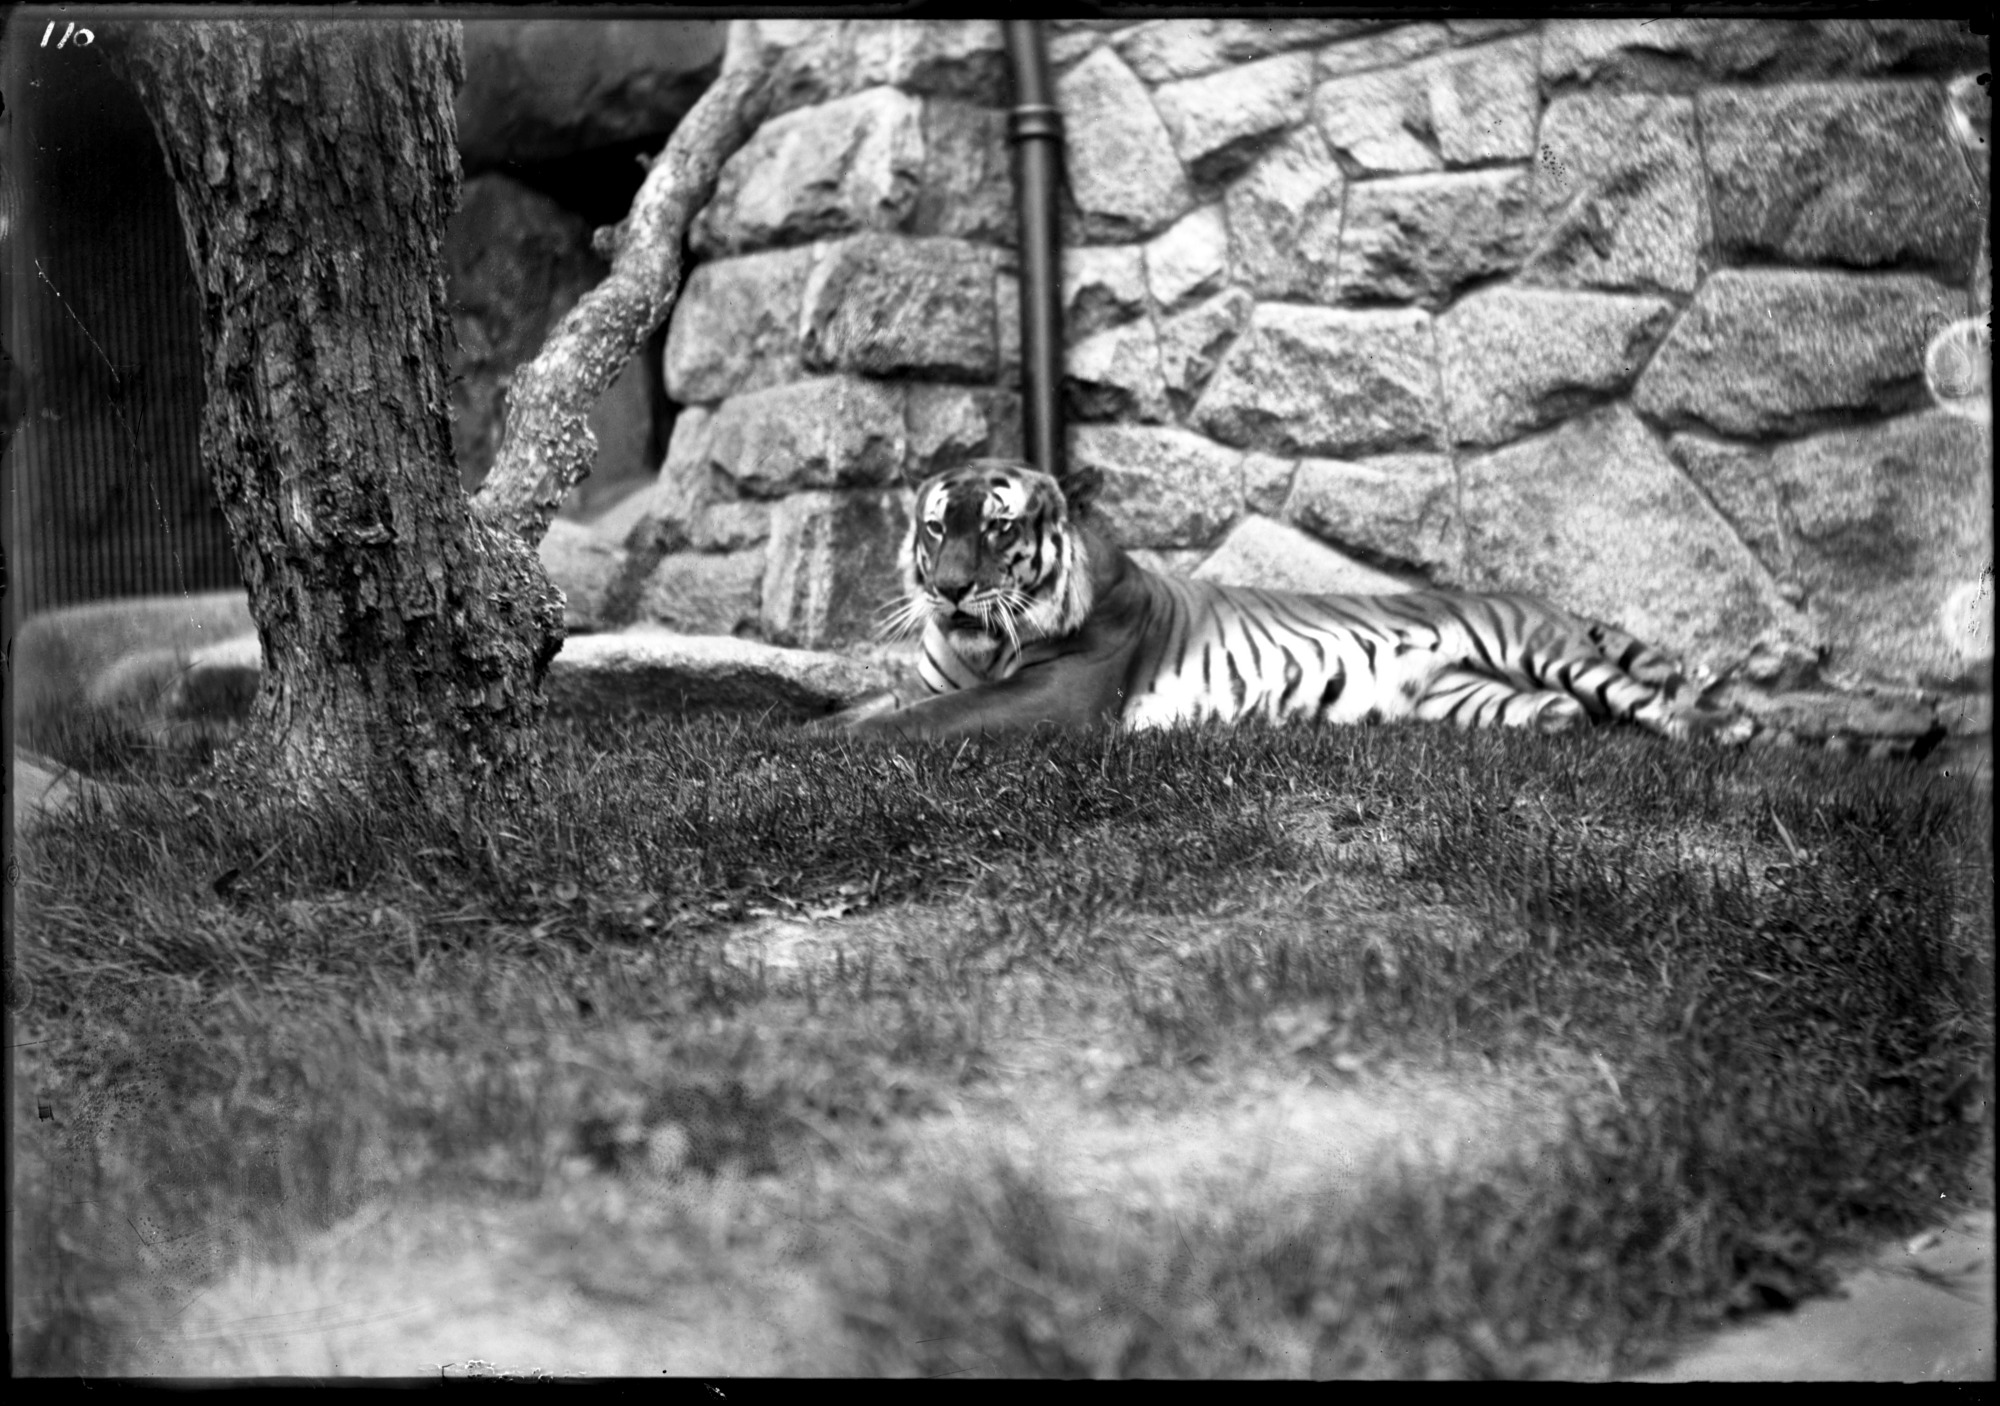 Bengal Tiger, Male, 1896, Smithsonian Institution Archives, SIA Acc. 14-167 [NZP-0110].